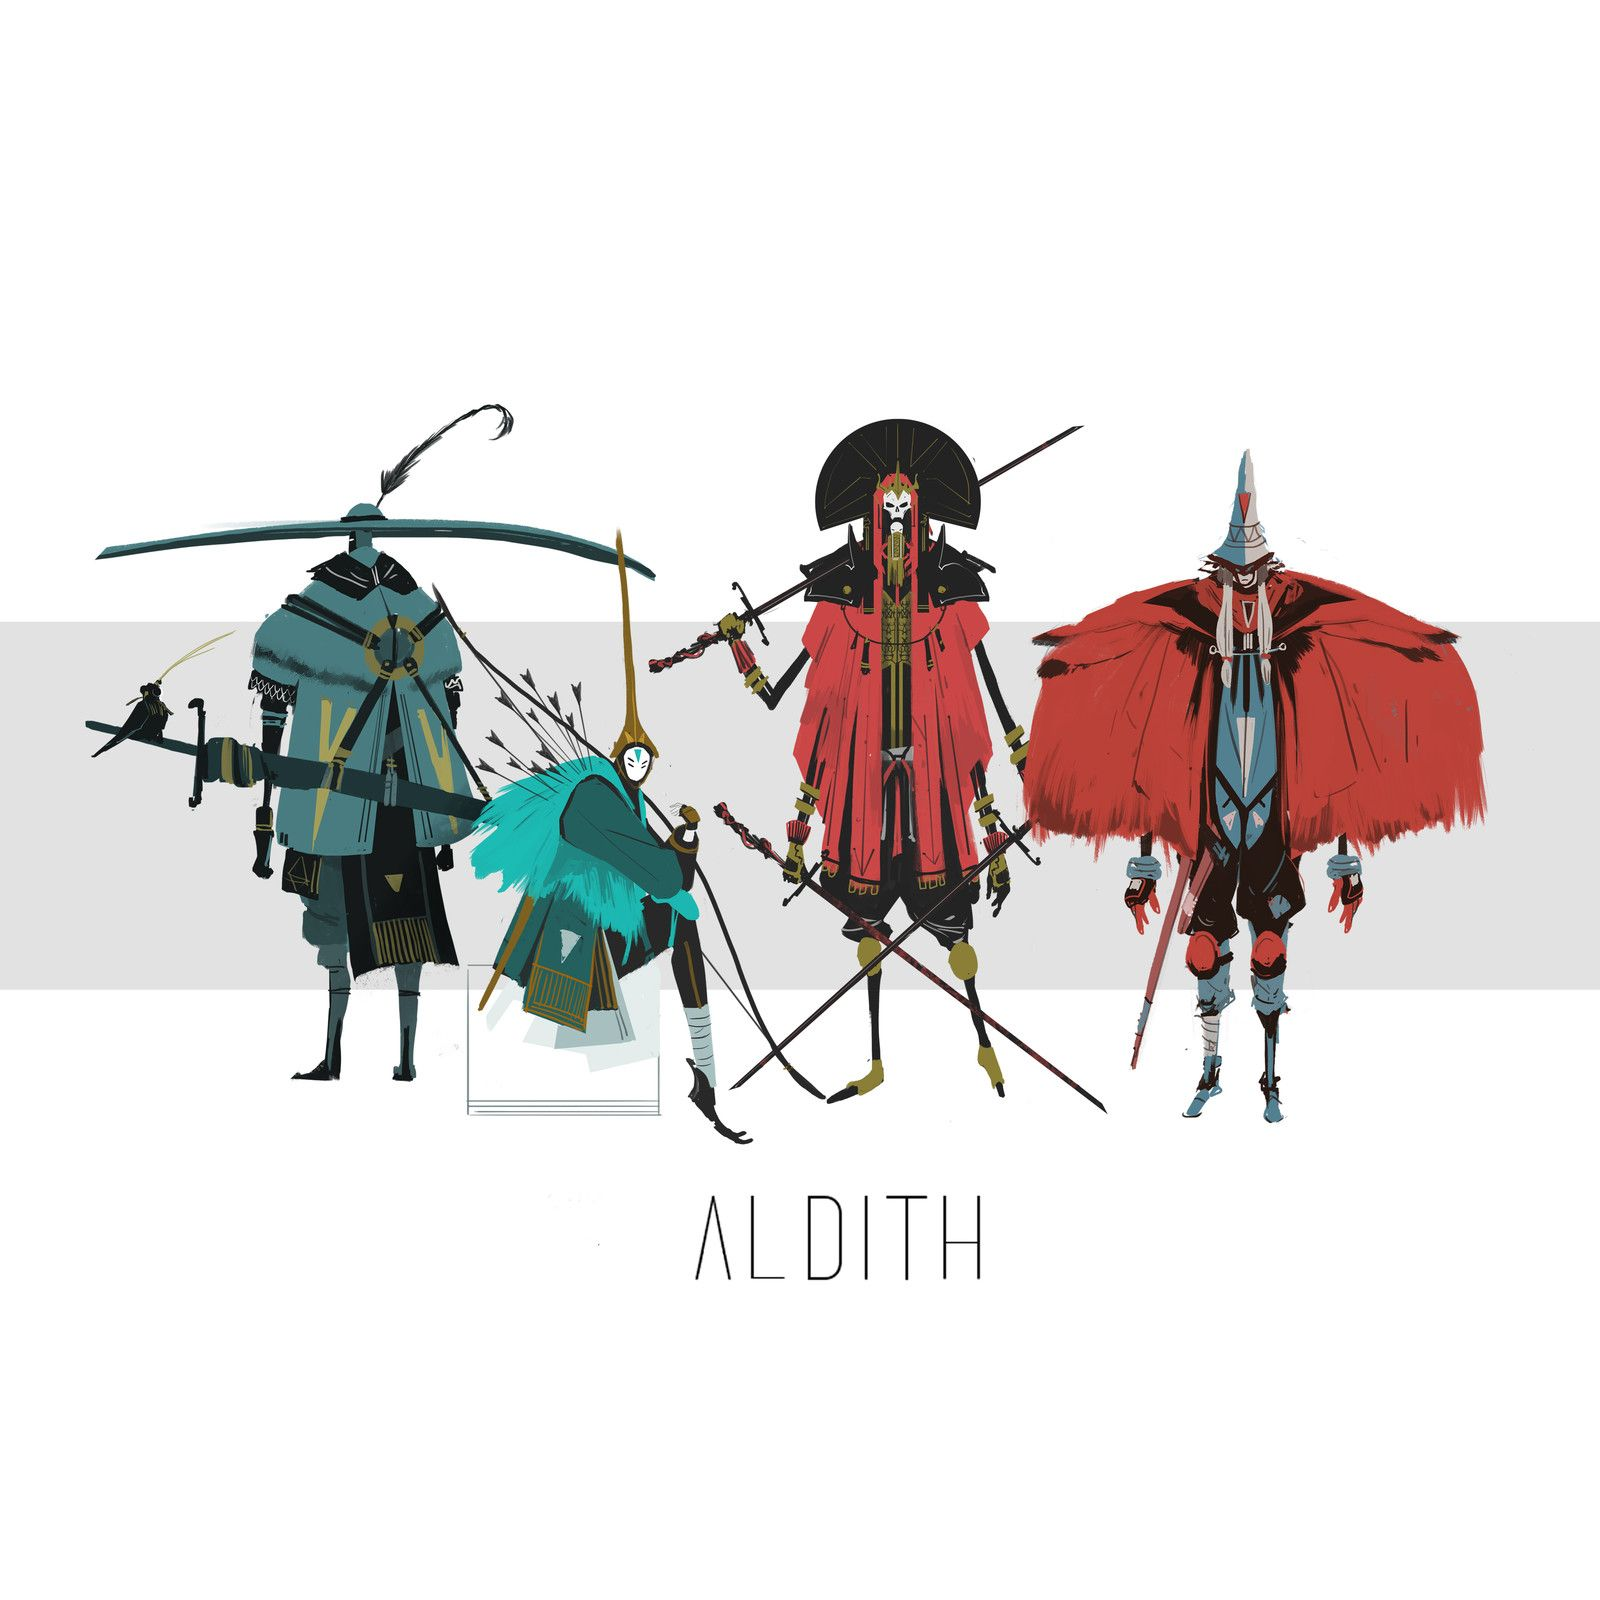 Aldith Line Up, Janice Chu on ArtStation at https://www.artstation.com/artwork/y68JQ